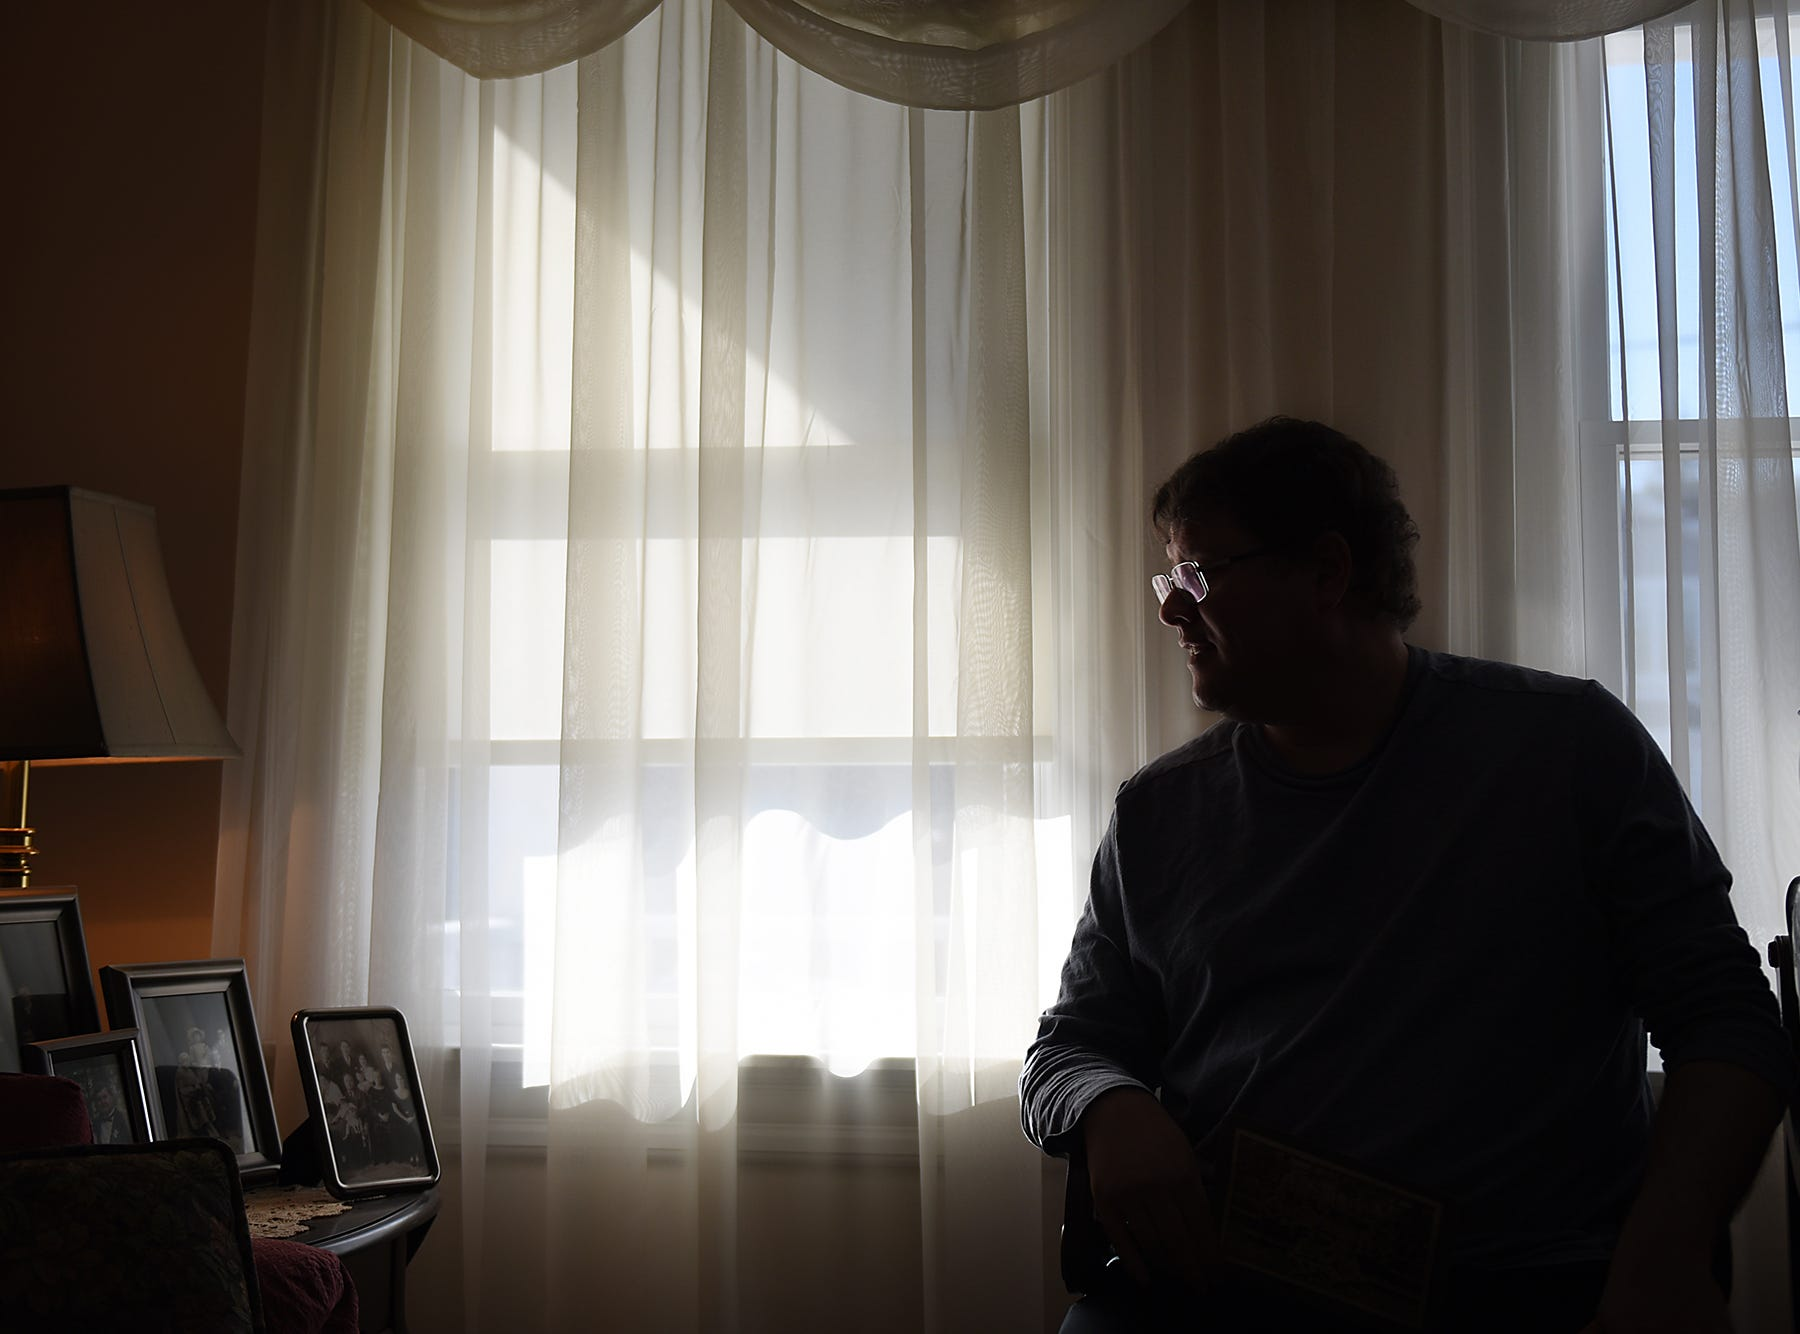 Paul Stefanowicz is taking over as Tenafly Town Historian after Alice Rigney's retirement. Stefanowicz is shown in his home on Thursday January 18, 2018.